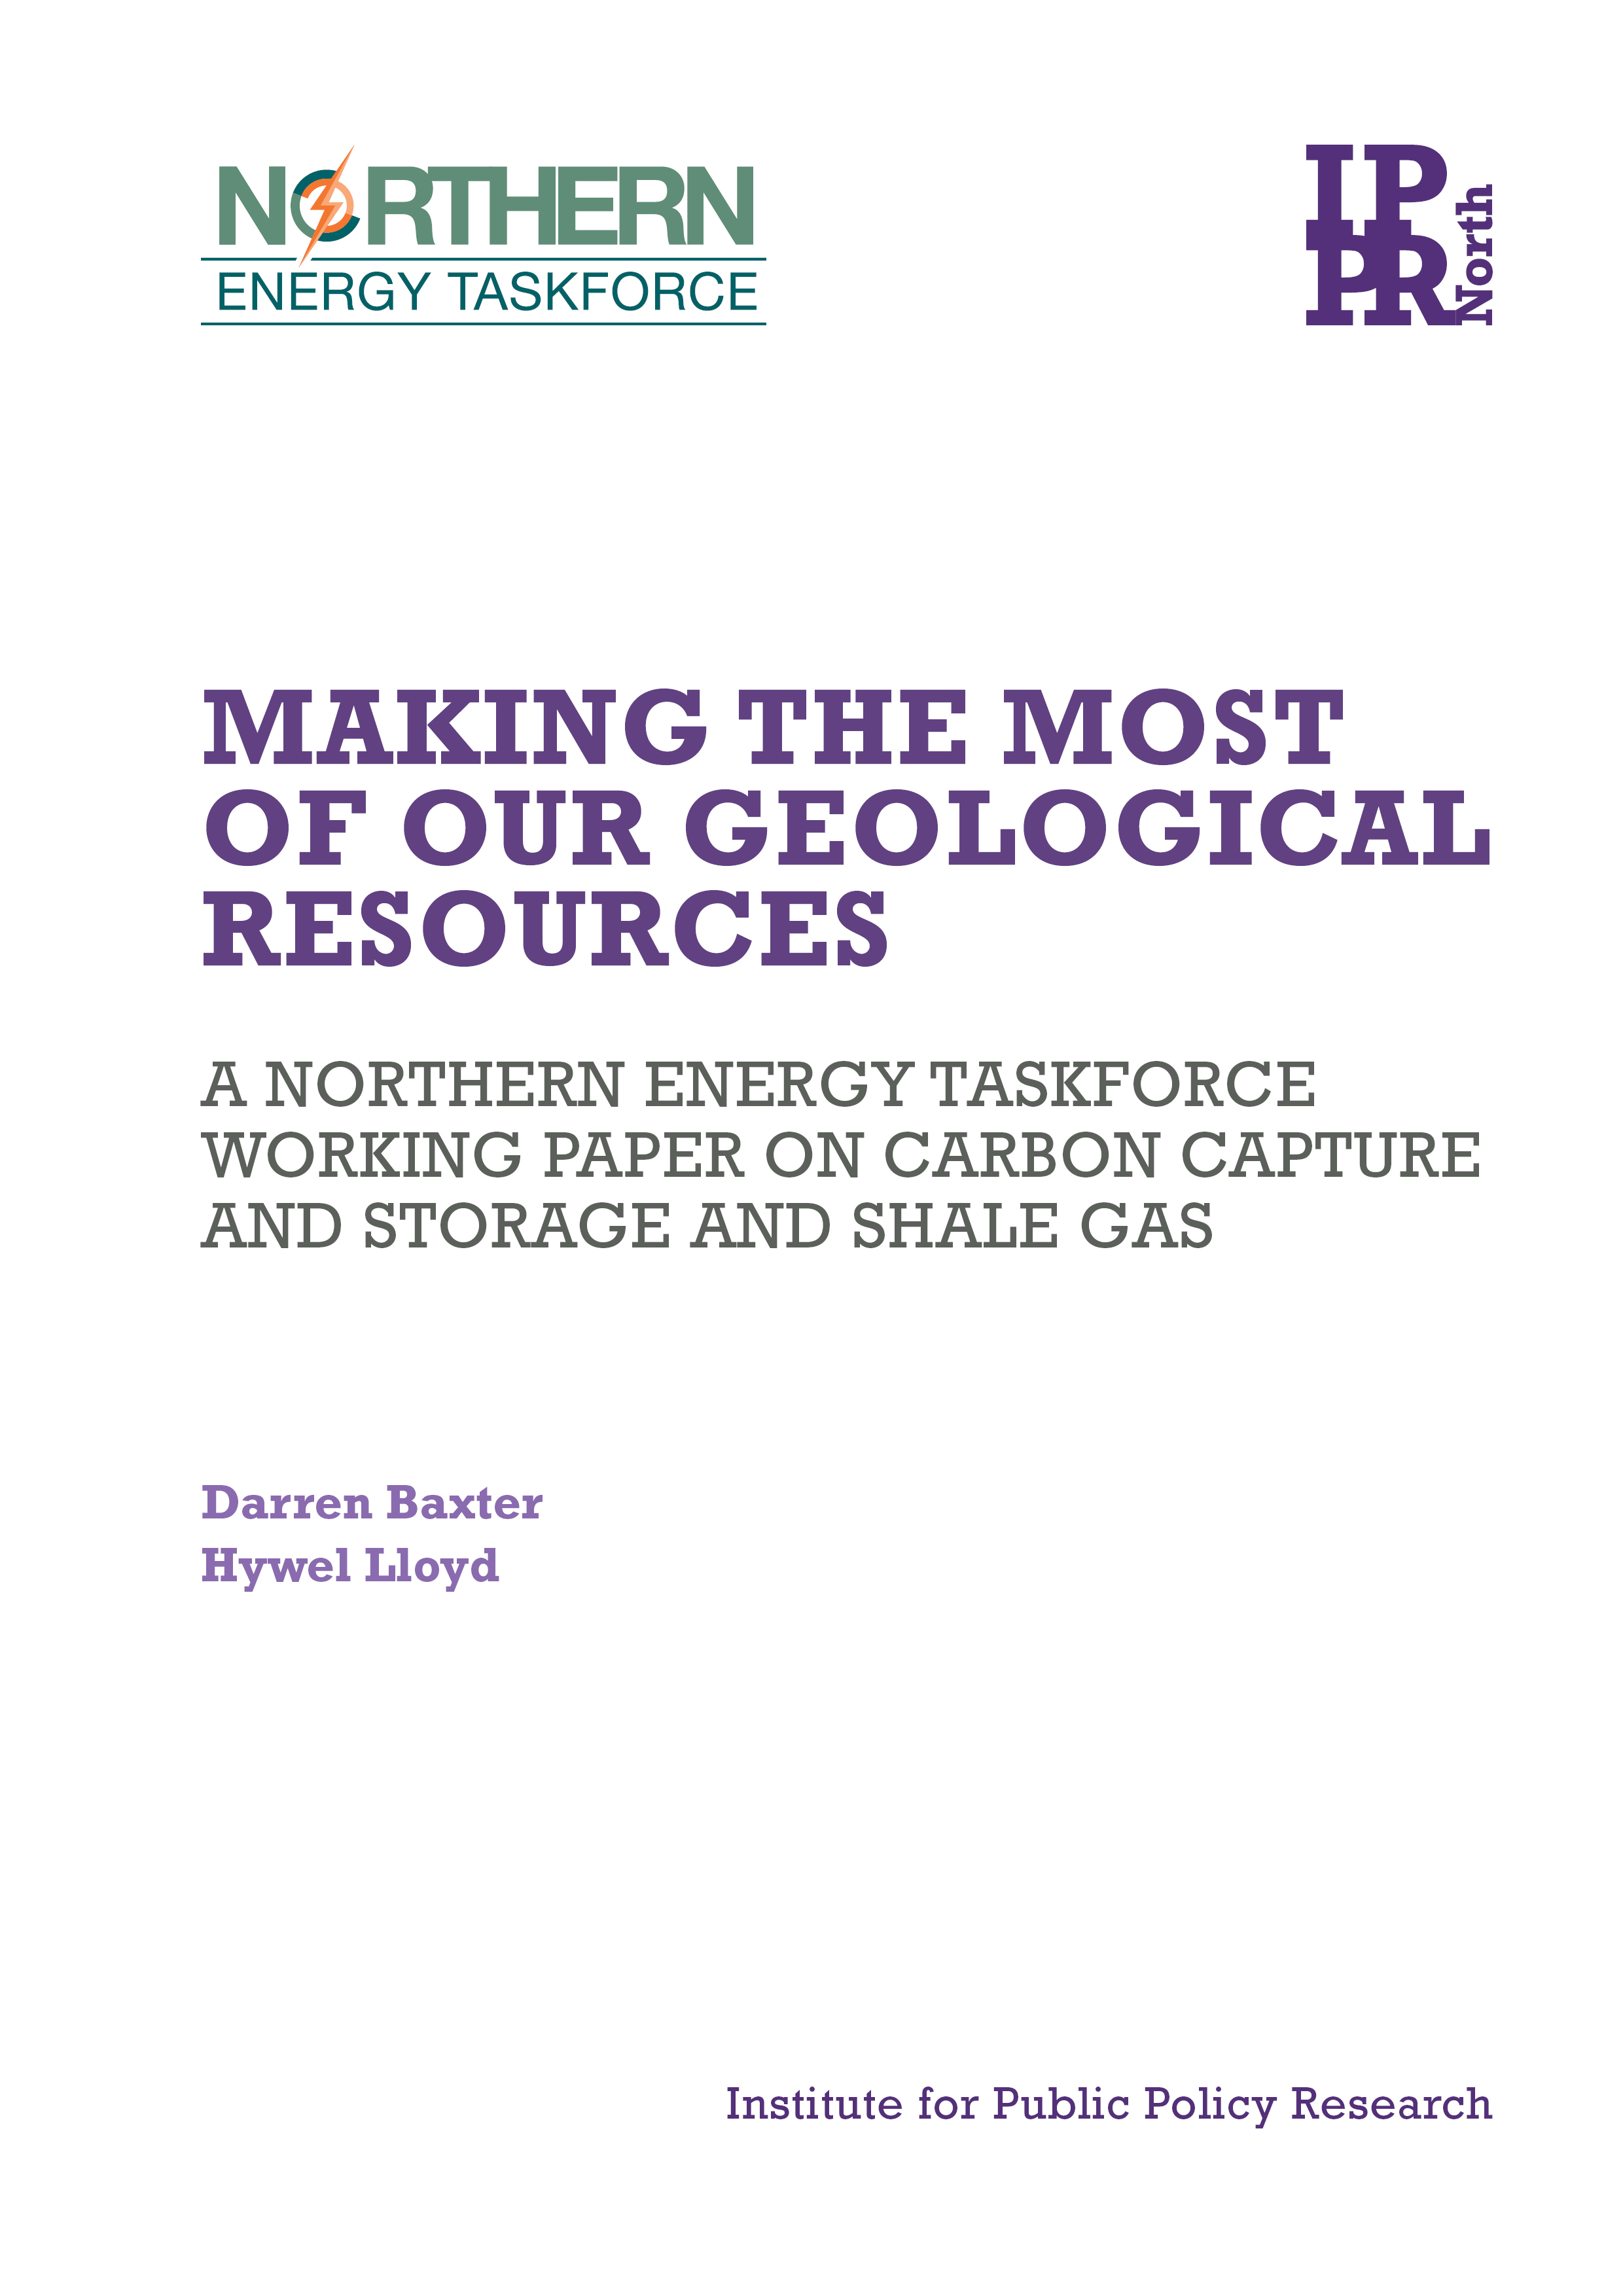 Making the most of our geological resources